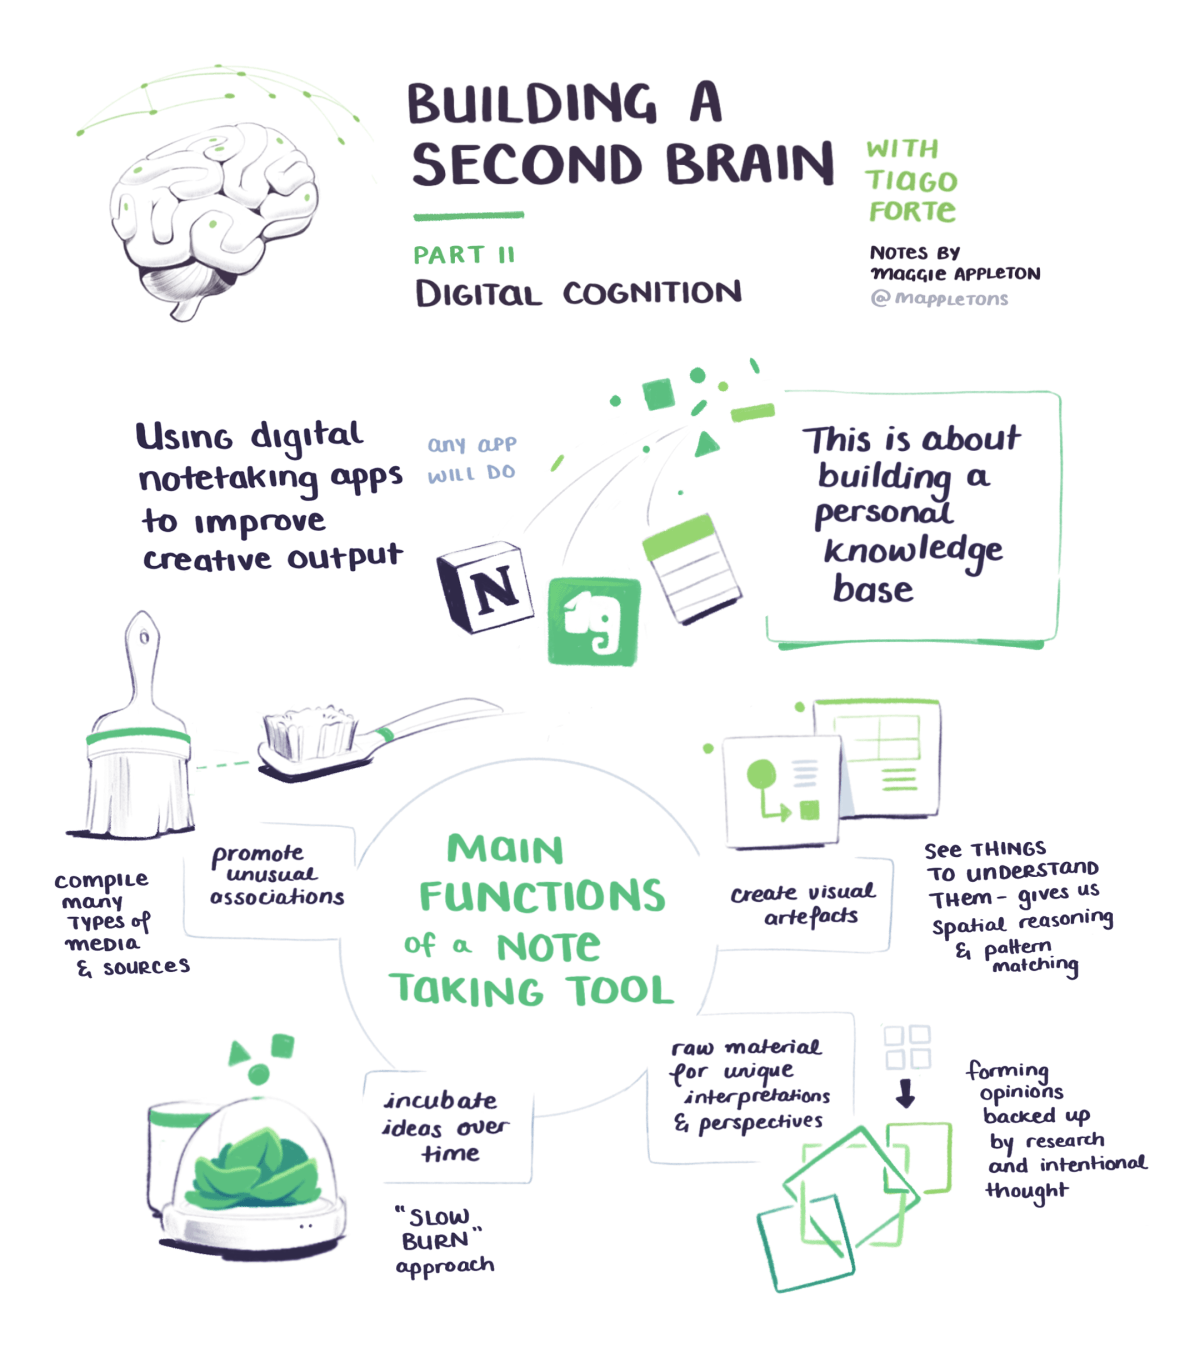 BASB sketchnotes on digital cognition and building a personal knowledge base